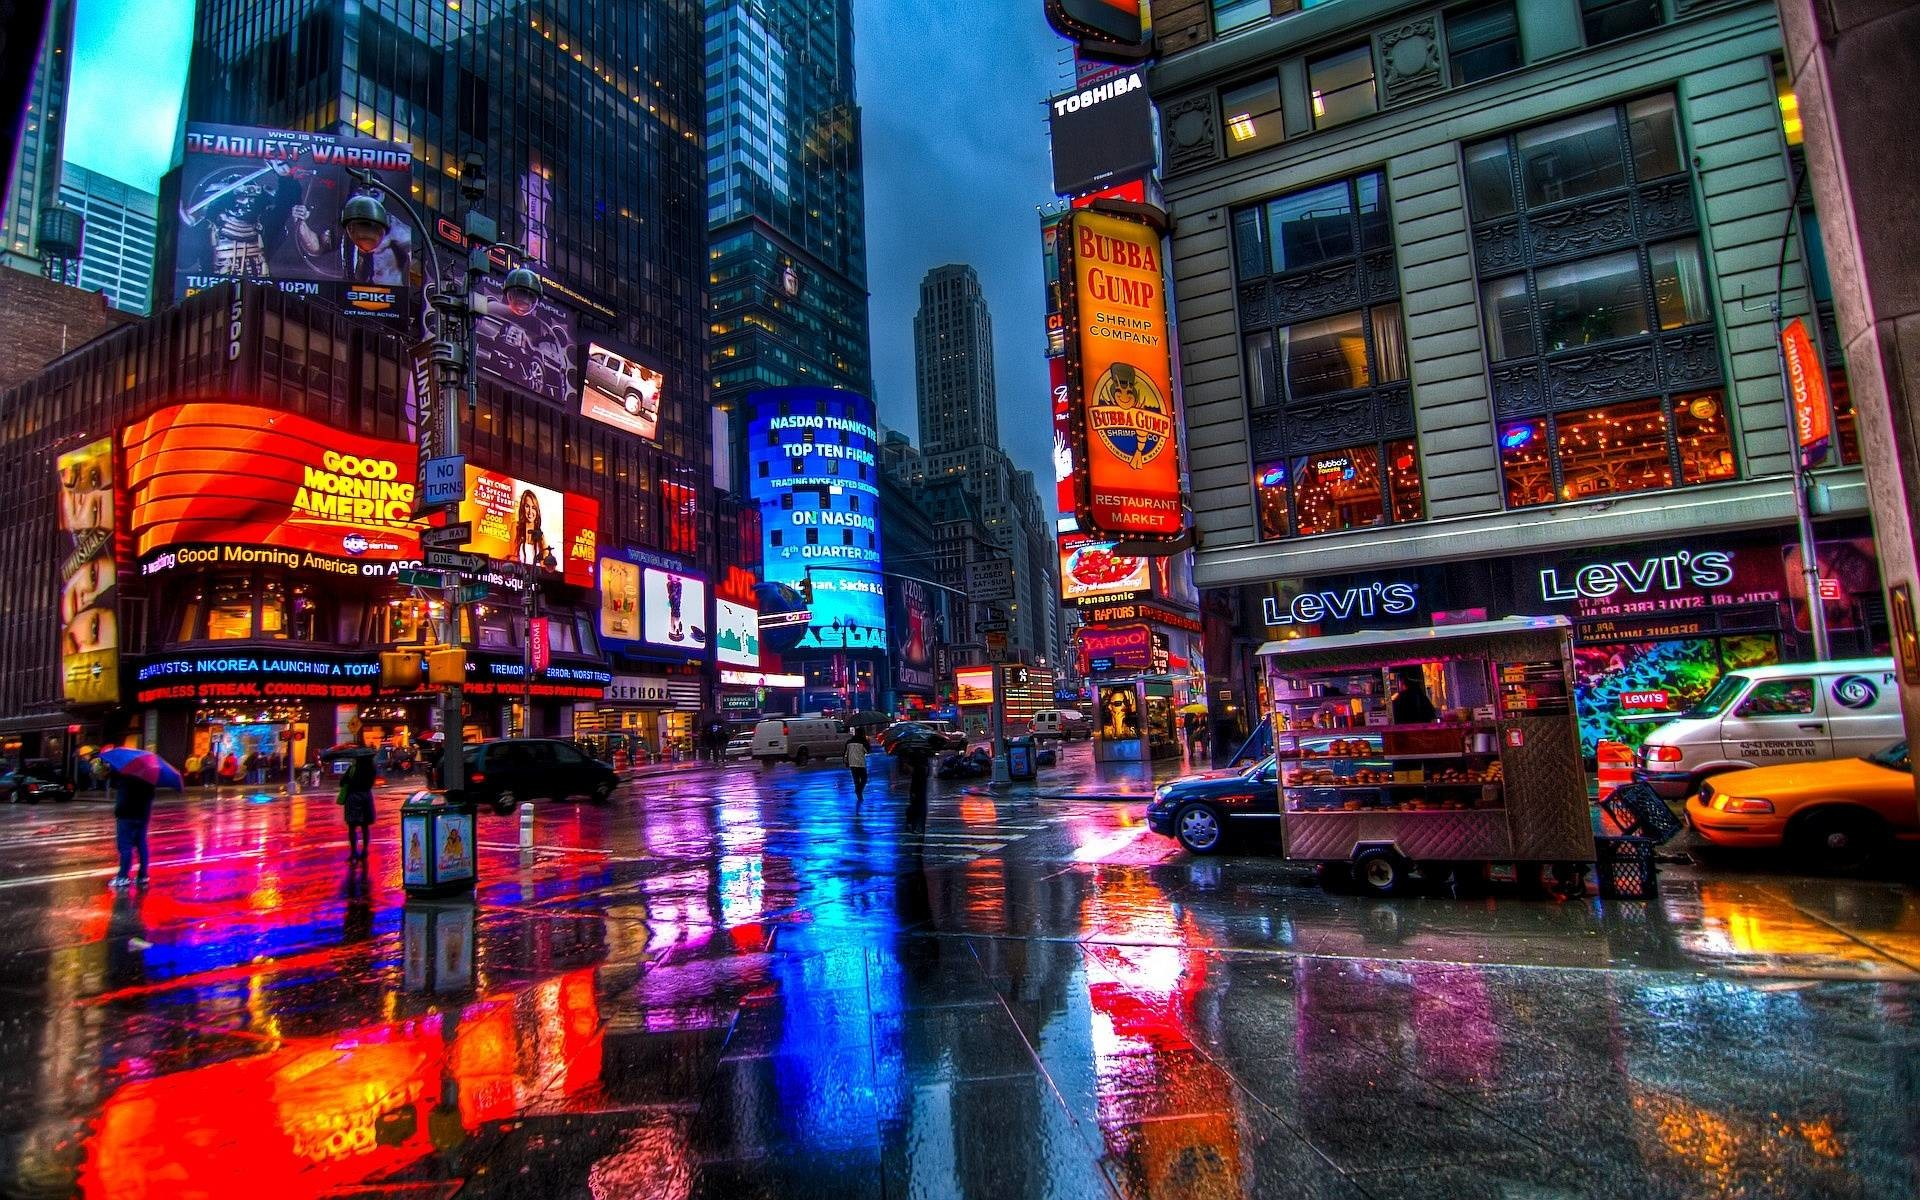 1920x1200 Billboards, Times Square, New York City widescreen wallpaper 1920×1200  Times Square Wallpapers